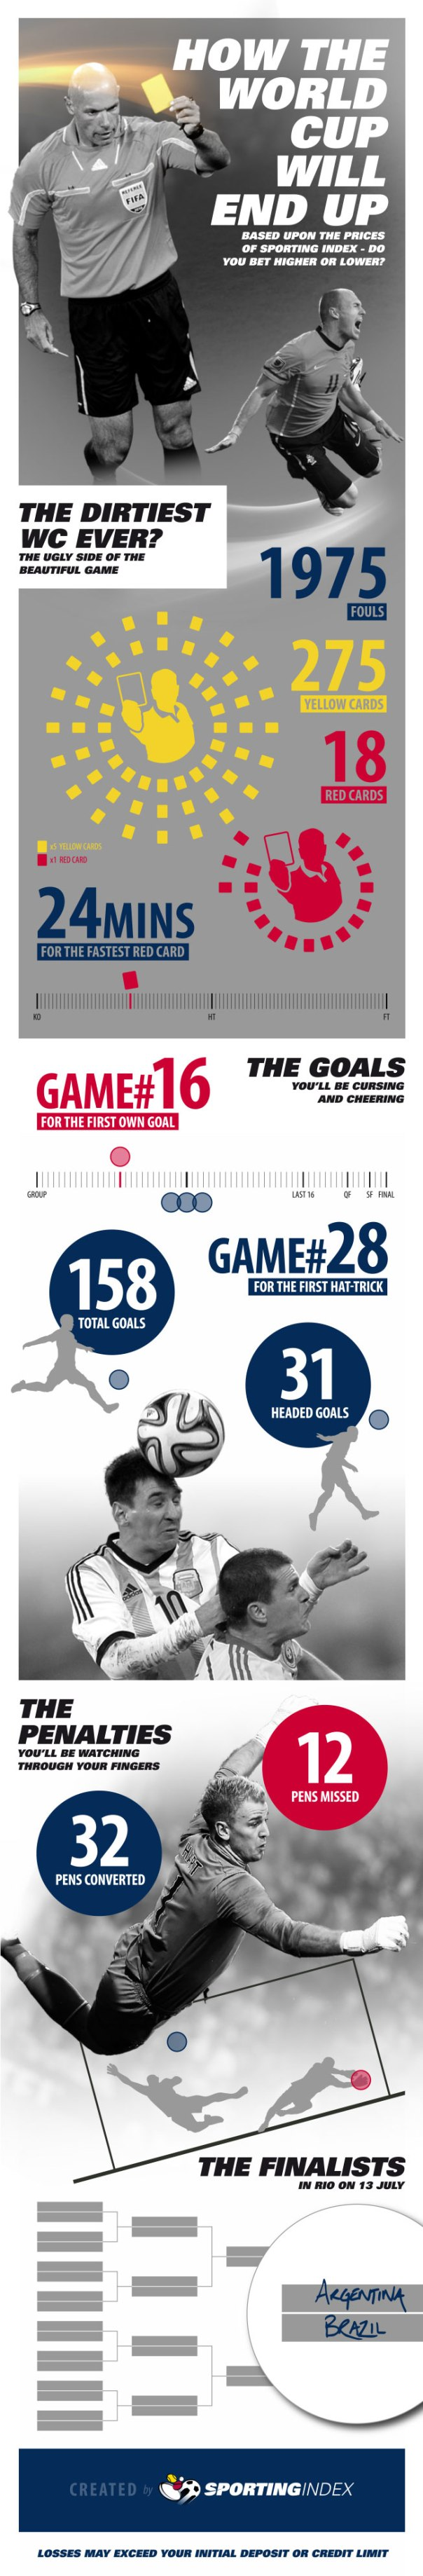 sportingindex_infographic_worldcuppredictor_2014